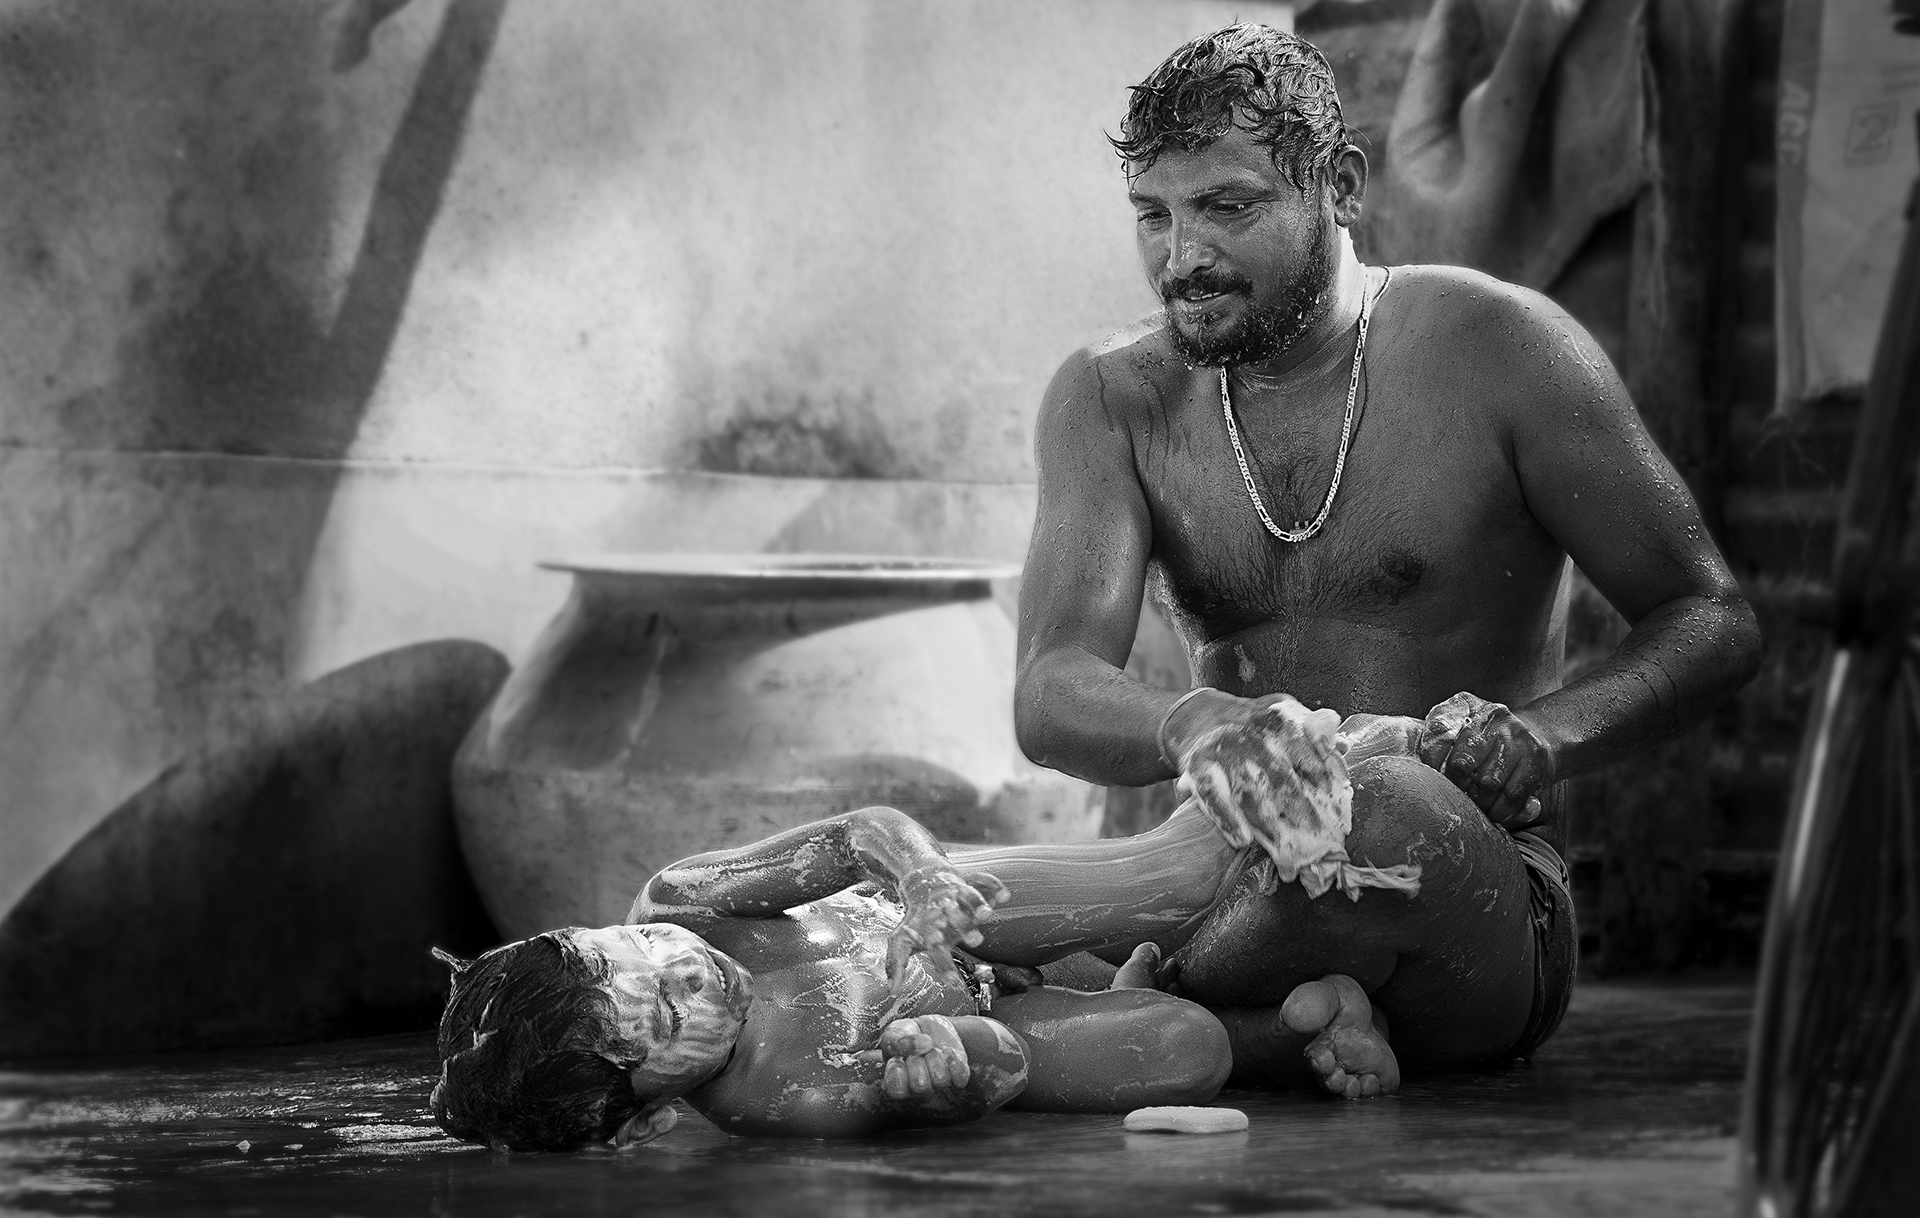 While i was running purpose of a certain work ,suddenly my eye's found that the father was bathing his little child joyfully & the little child was really enjoying that bath.A common story of a family but a very loving and remarkable moment which touched my soul,the moment really inspired me a lot for being a father in future like him.Wish one day I could also love & take care of my child.Cause father is the first unsung hero of a child's eye.